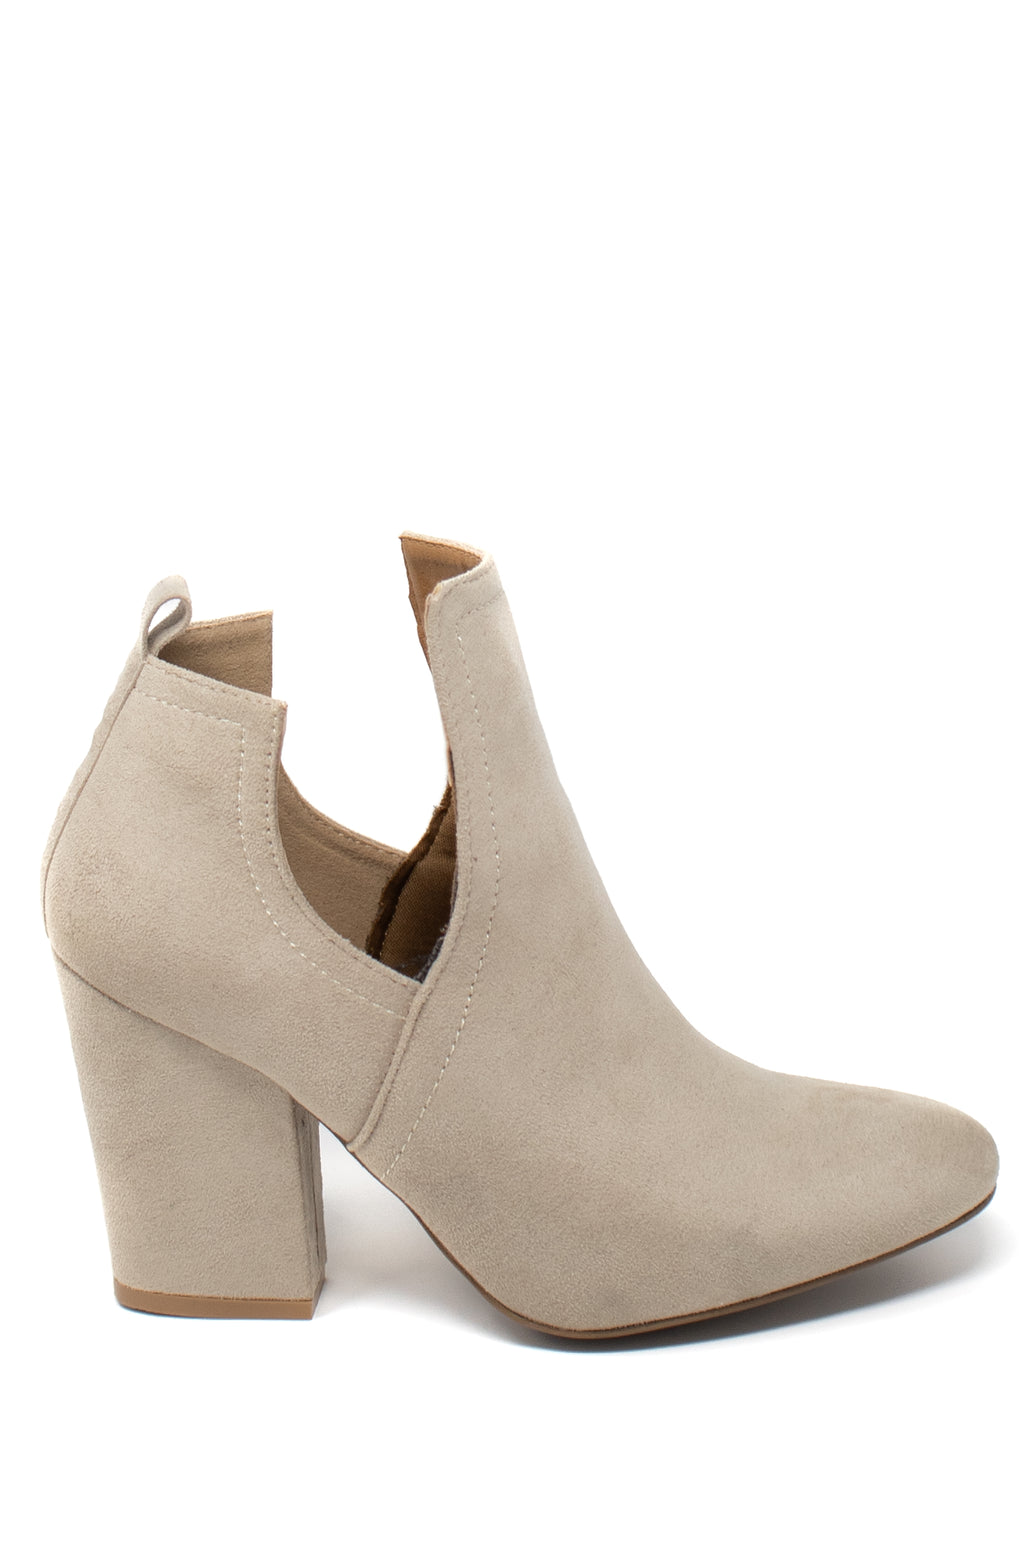 Sweet Kiss - Oatmeal Cutout Booties